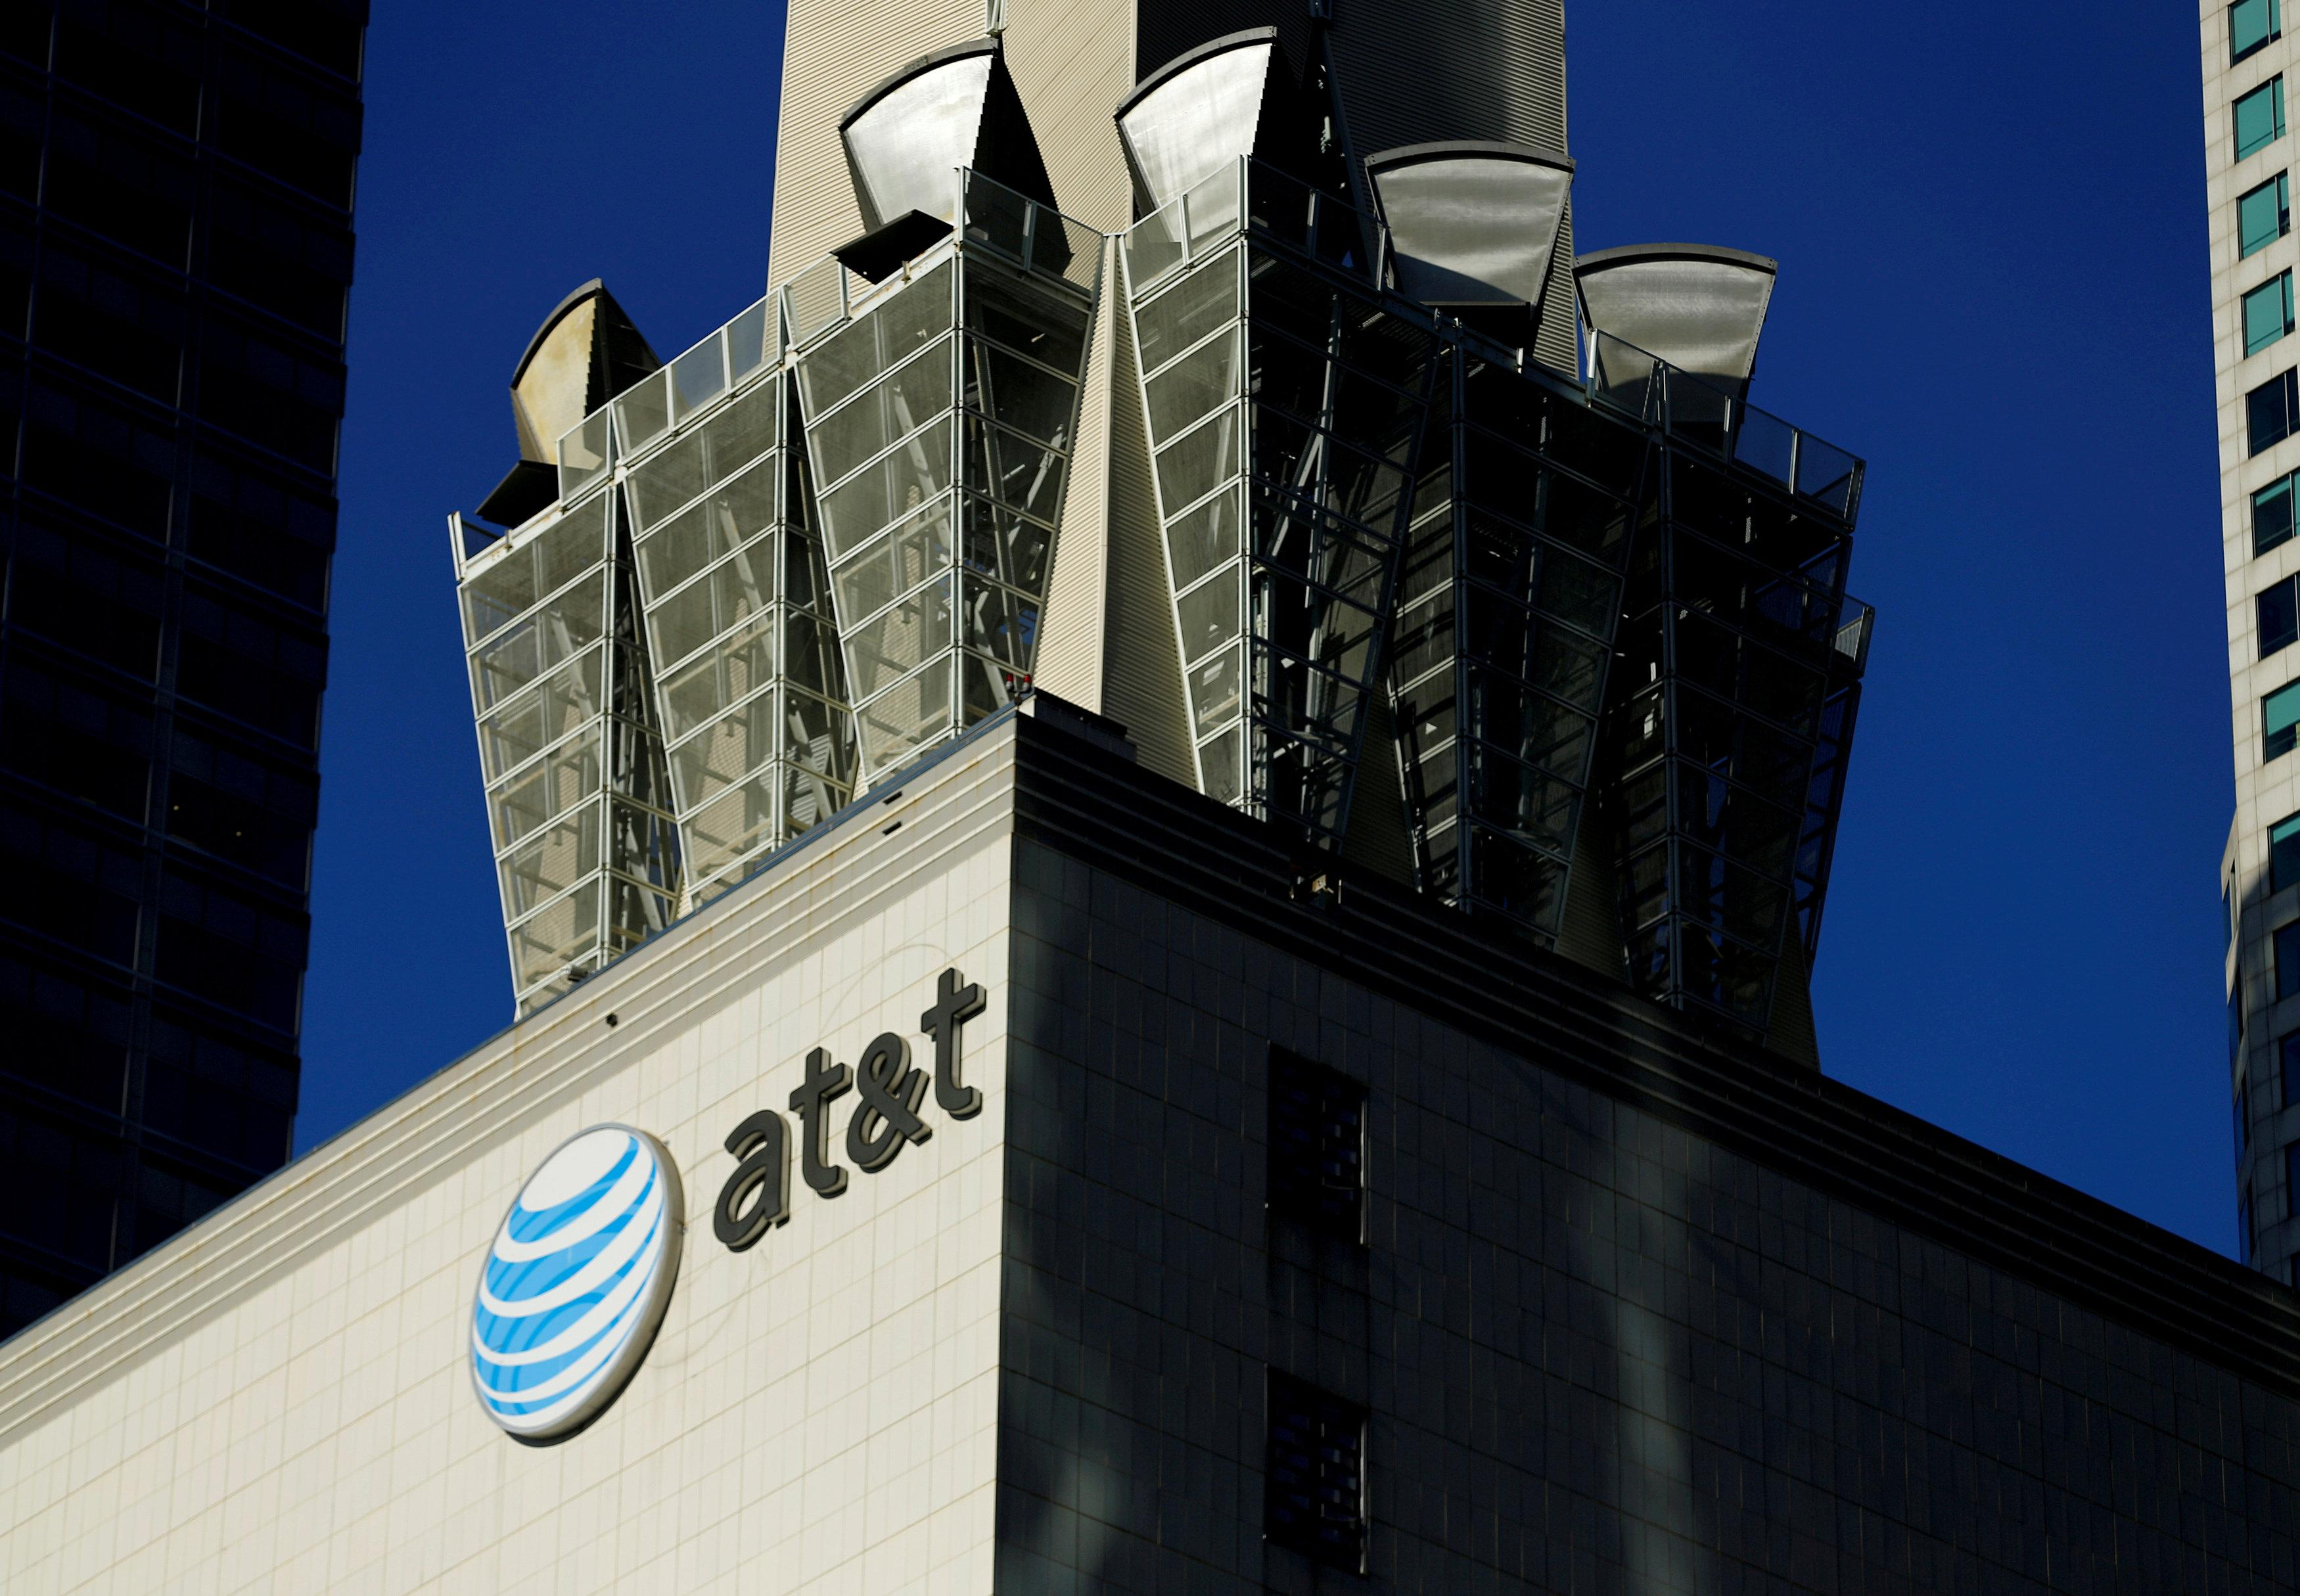 An AT&T logo and communication equipment is shown on a building in downtown Los Angeles, California October 29, 2014.    Mike Blake